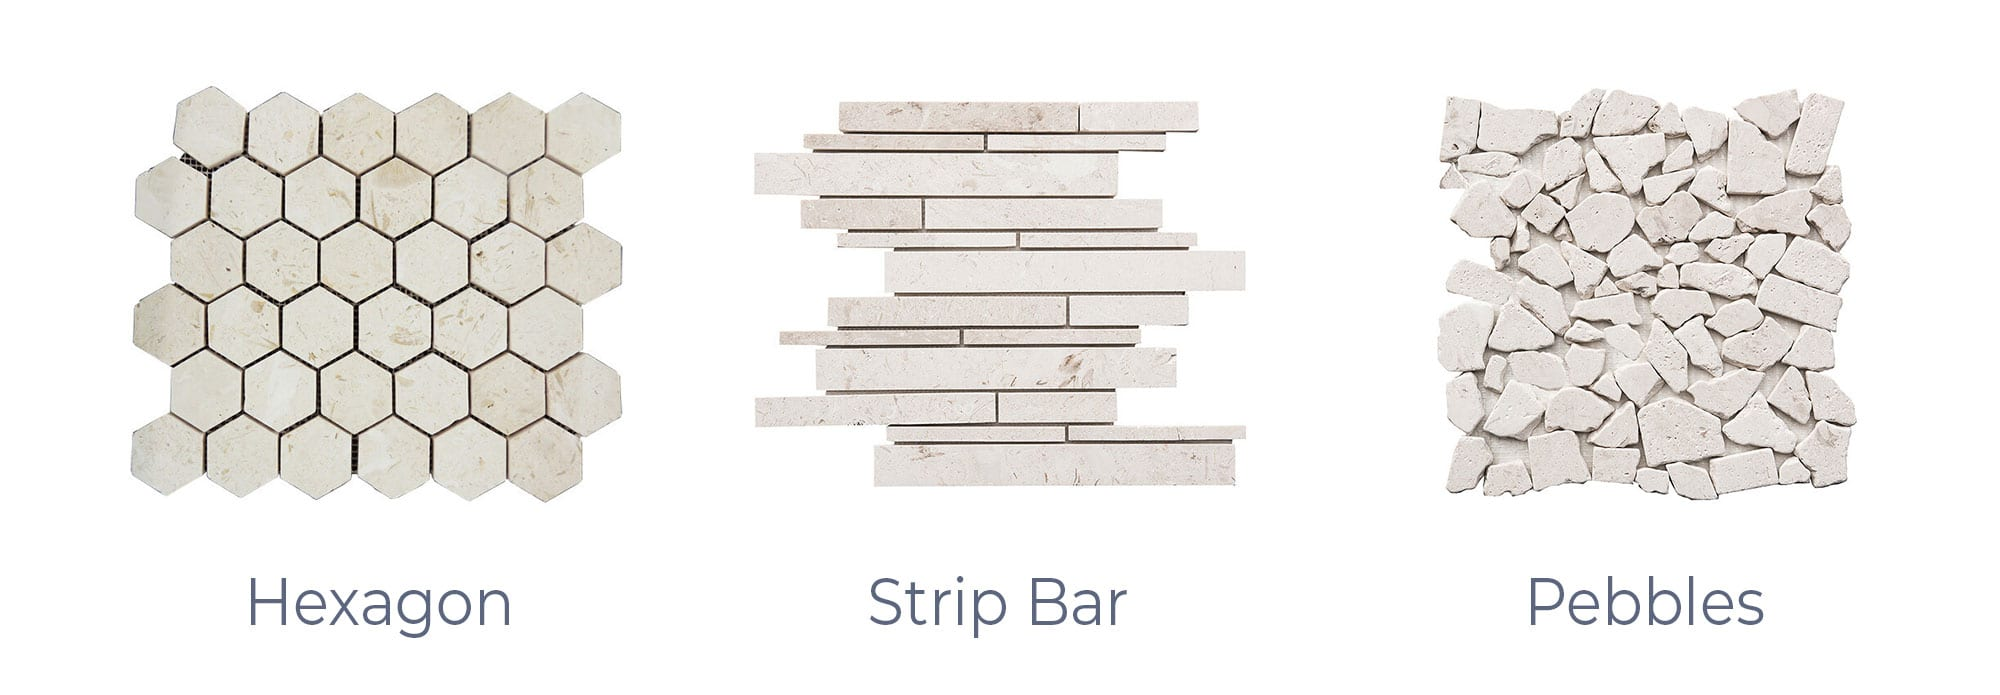 Stoneline-Group-Shell-Beige-Travertine-Marble-Collection-Marble-Mosaic-Hexagon-Strip-Bar-Pebbles-Pictures